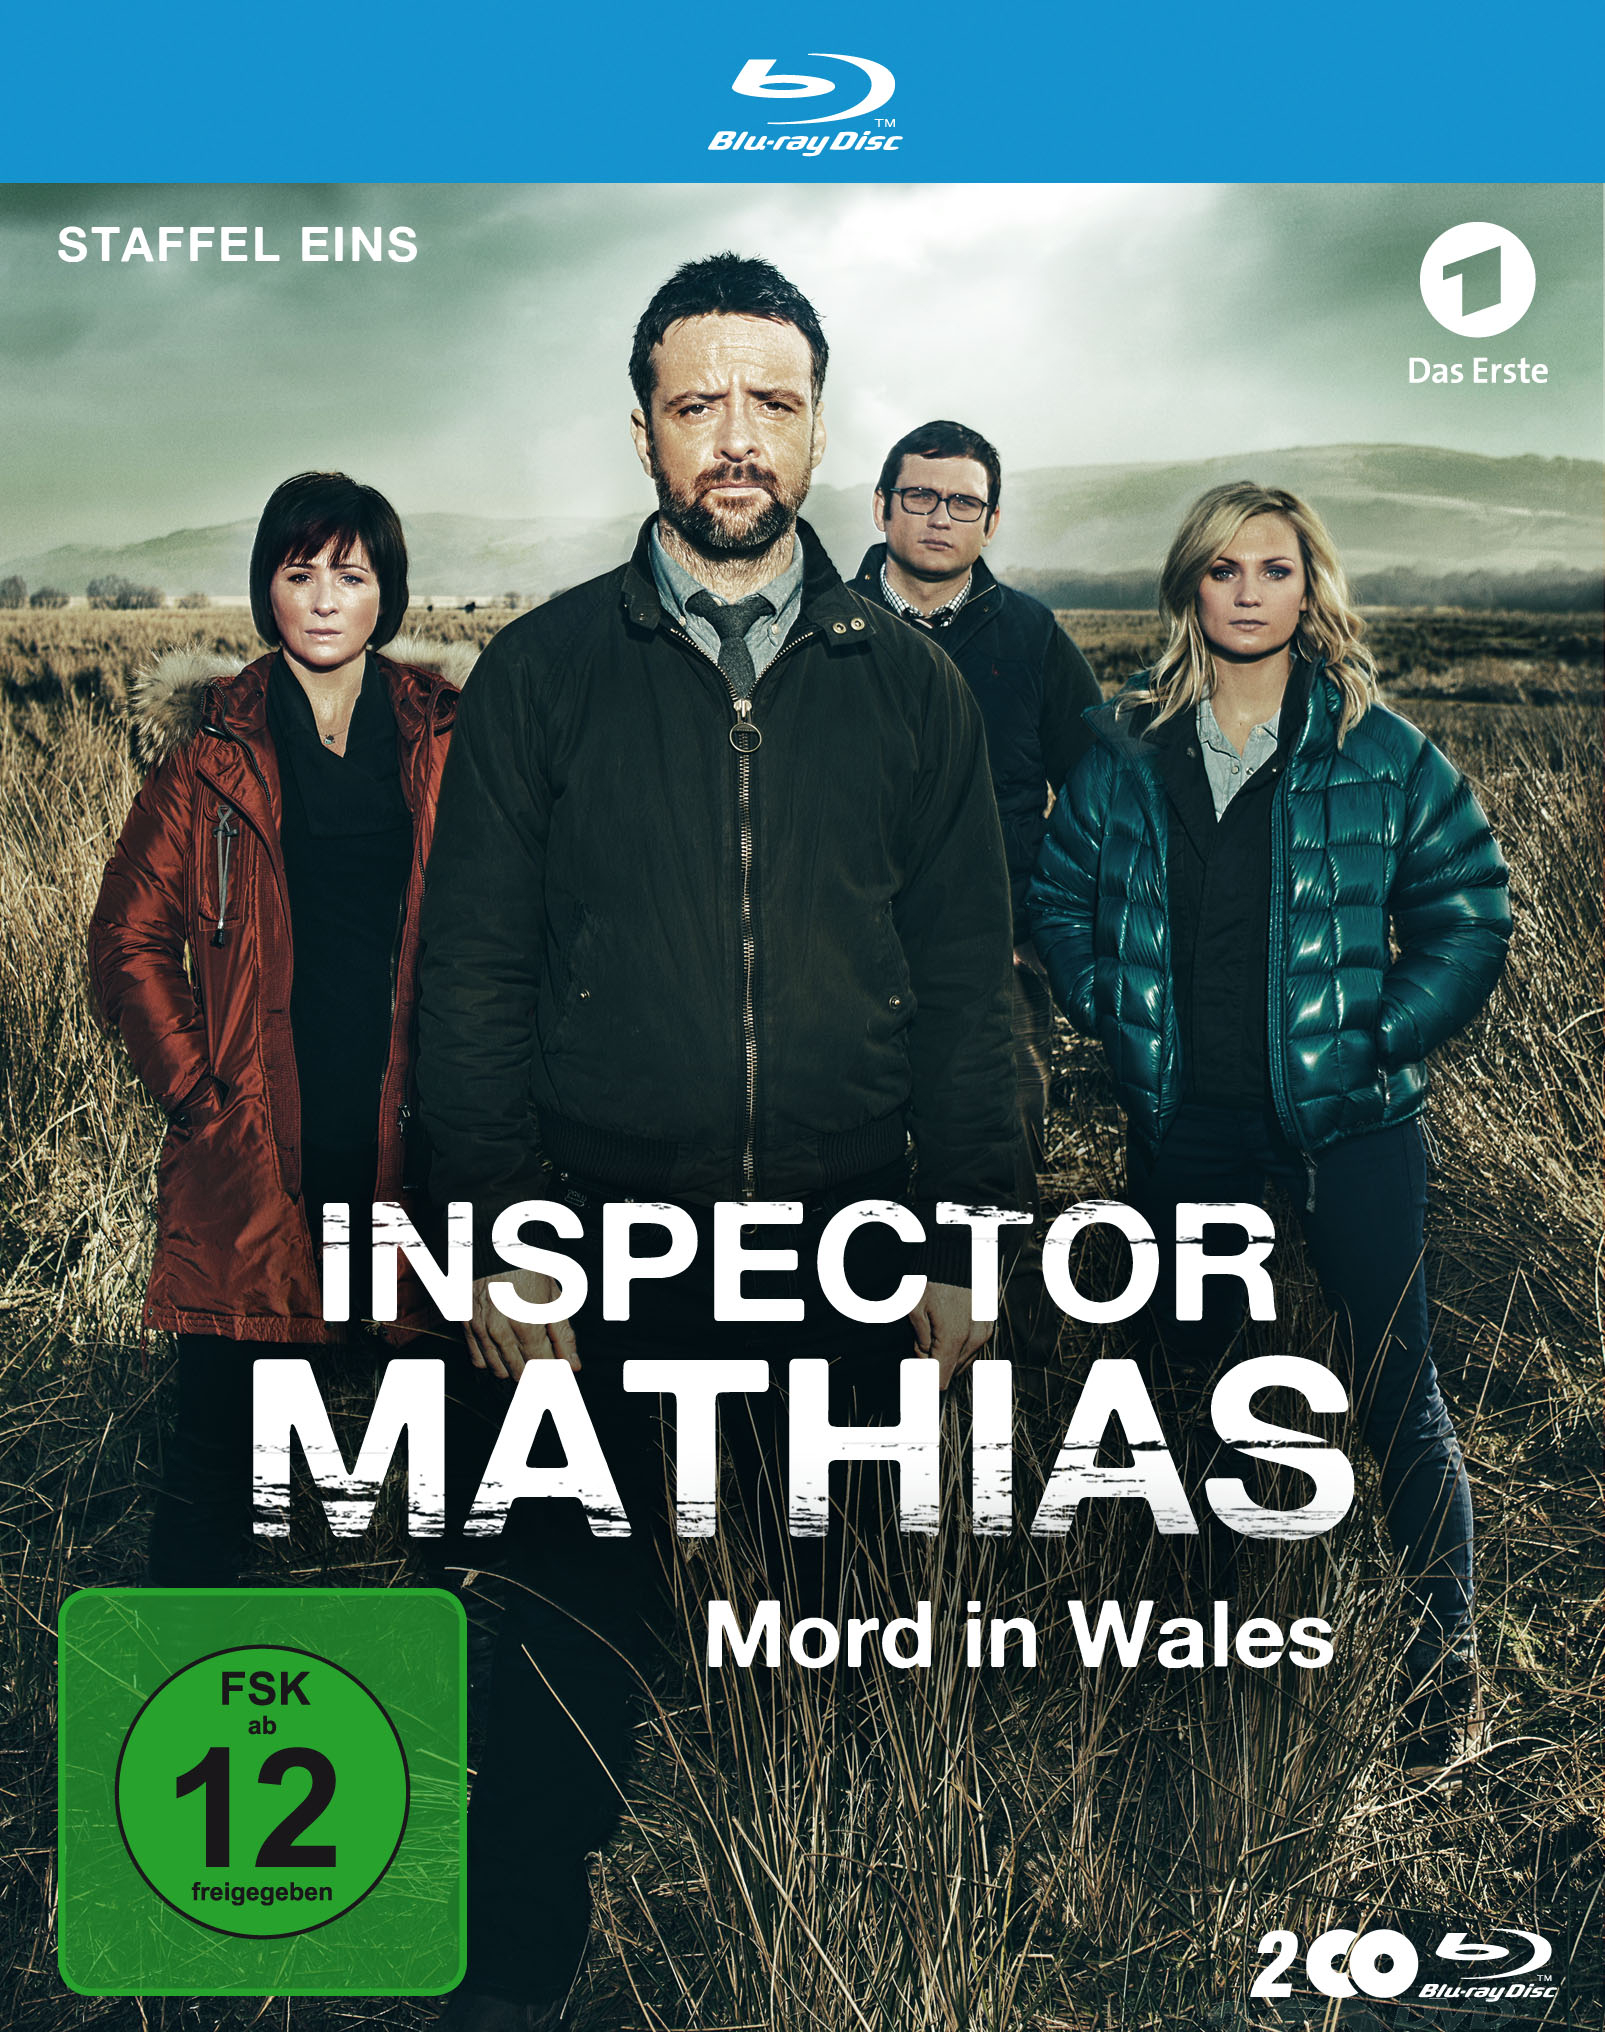 Inspector Mathias – Mord in Wales (TV-Serie, DVD/Blu-Ray)